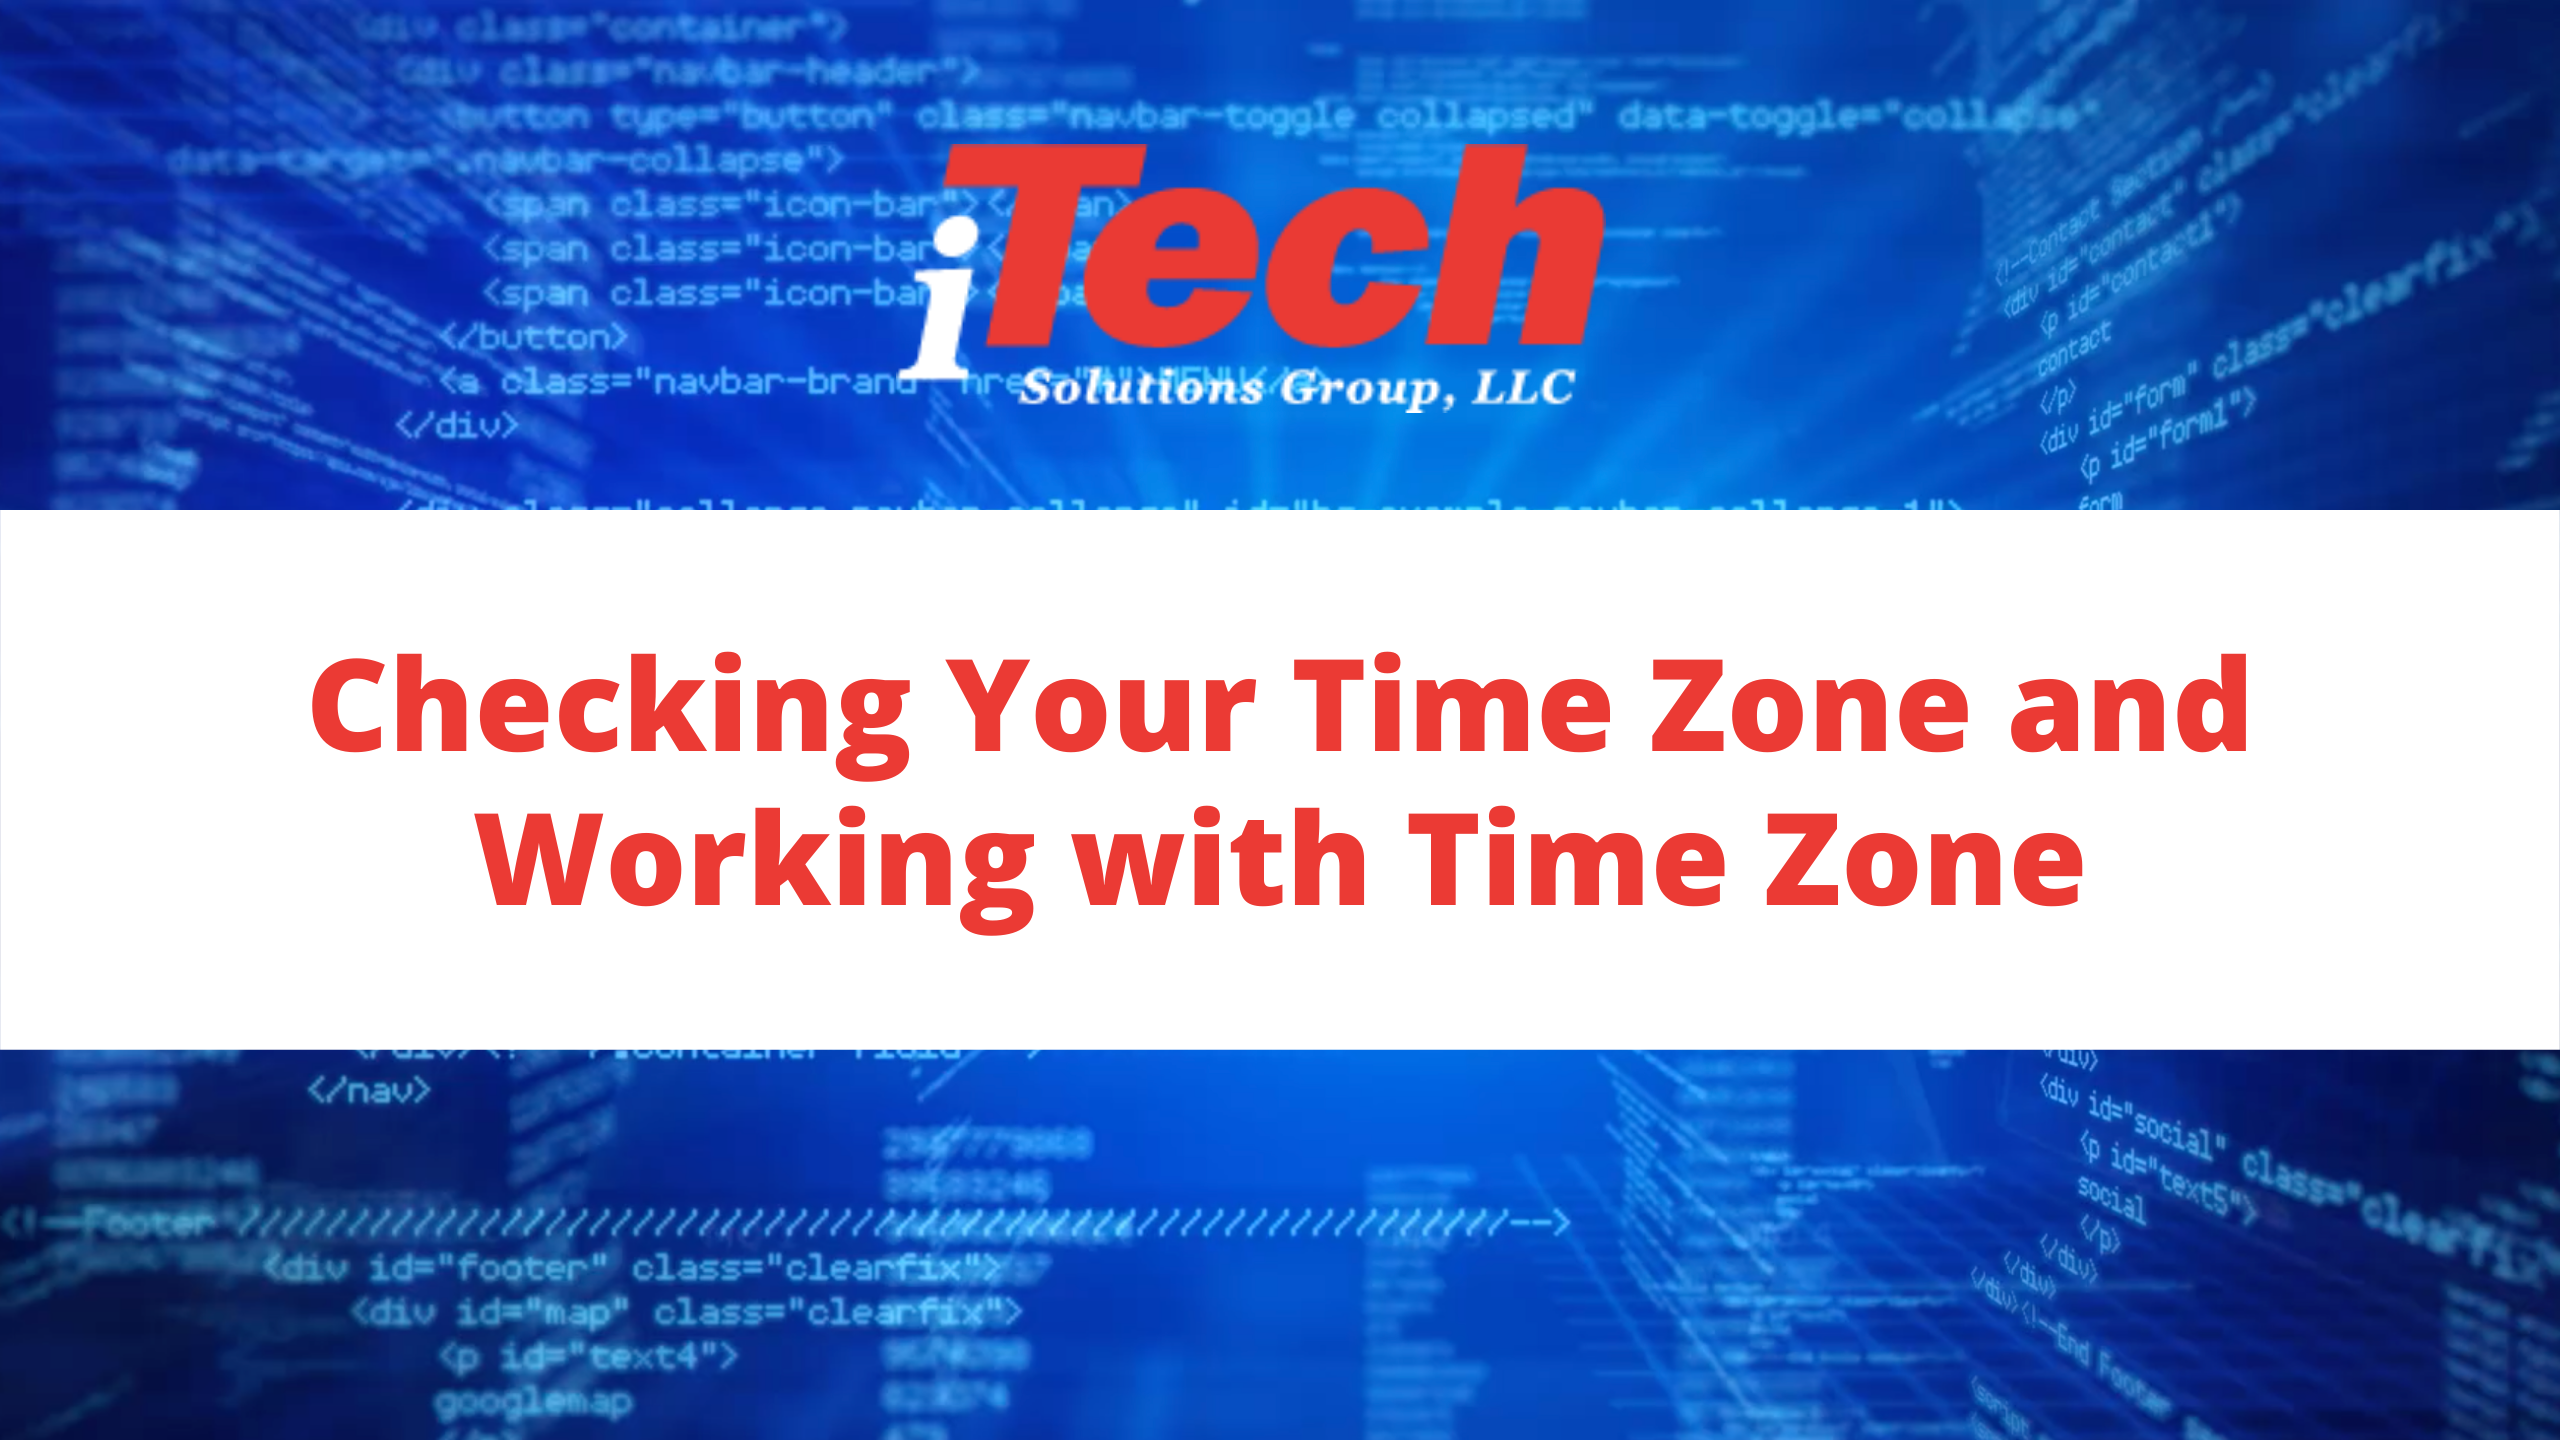 Checking Your Time Zone and Working with Time Zone